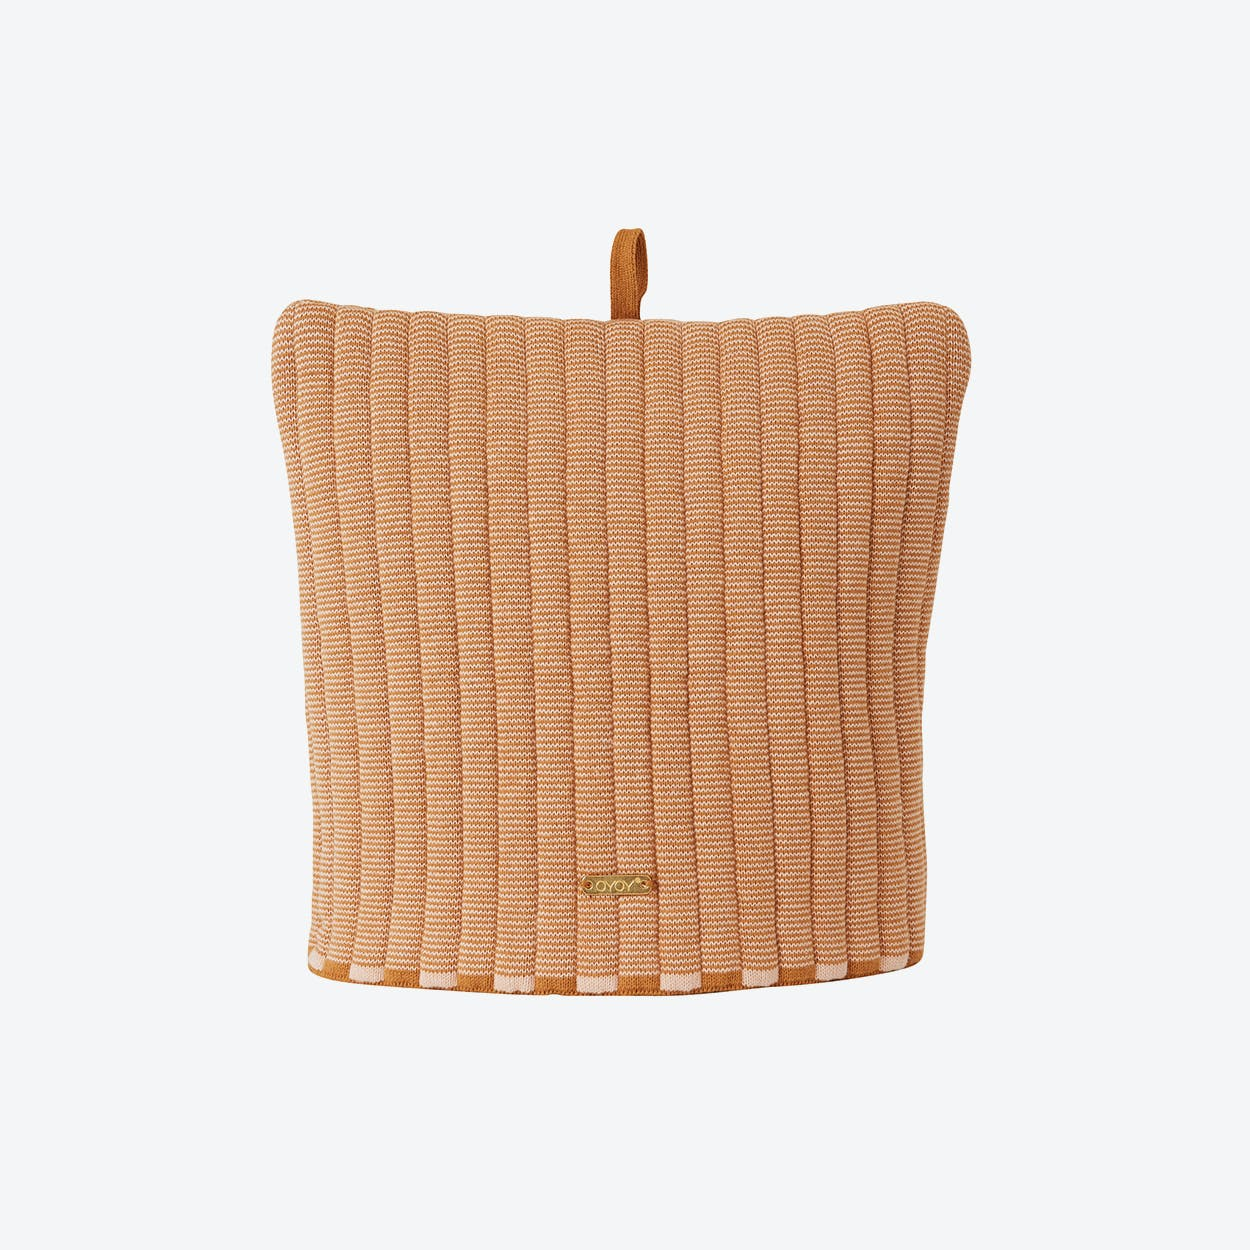 Stringa Tea Cozy in Caramel